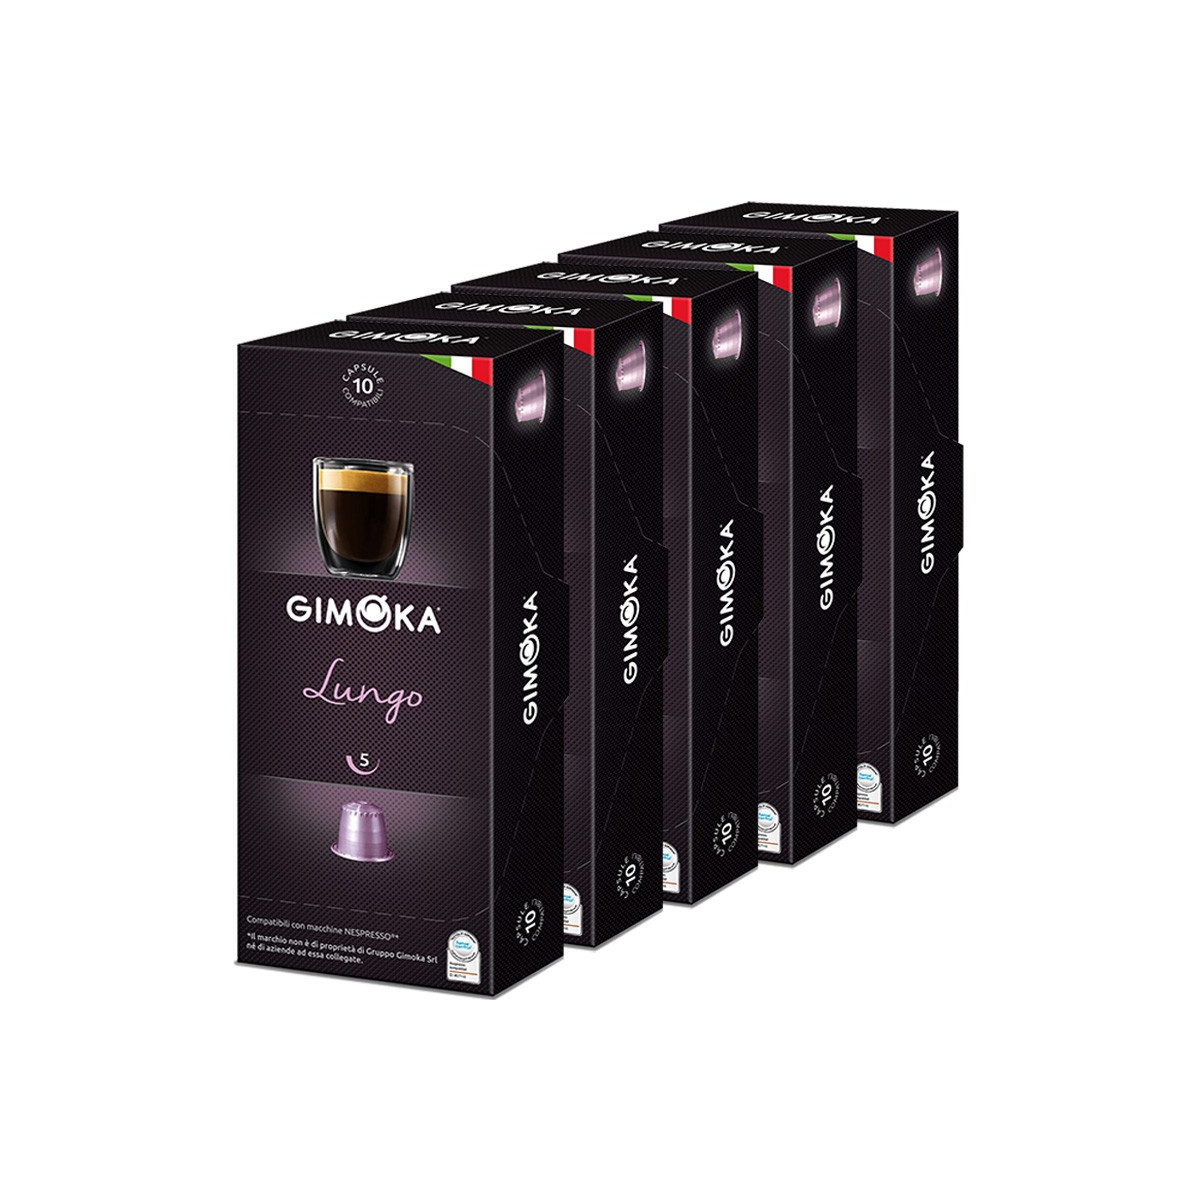 capsule nespresso compatible gimoka lungo 5 boites 50 capsules. Black Bedroom Furniture Sets. Home Design Ideas